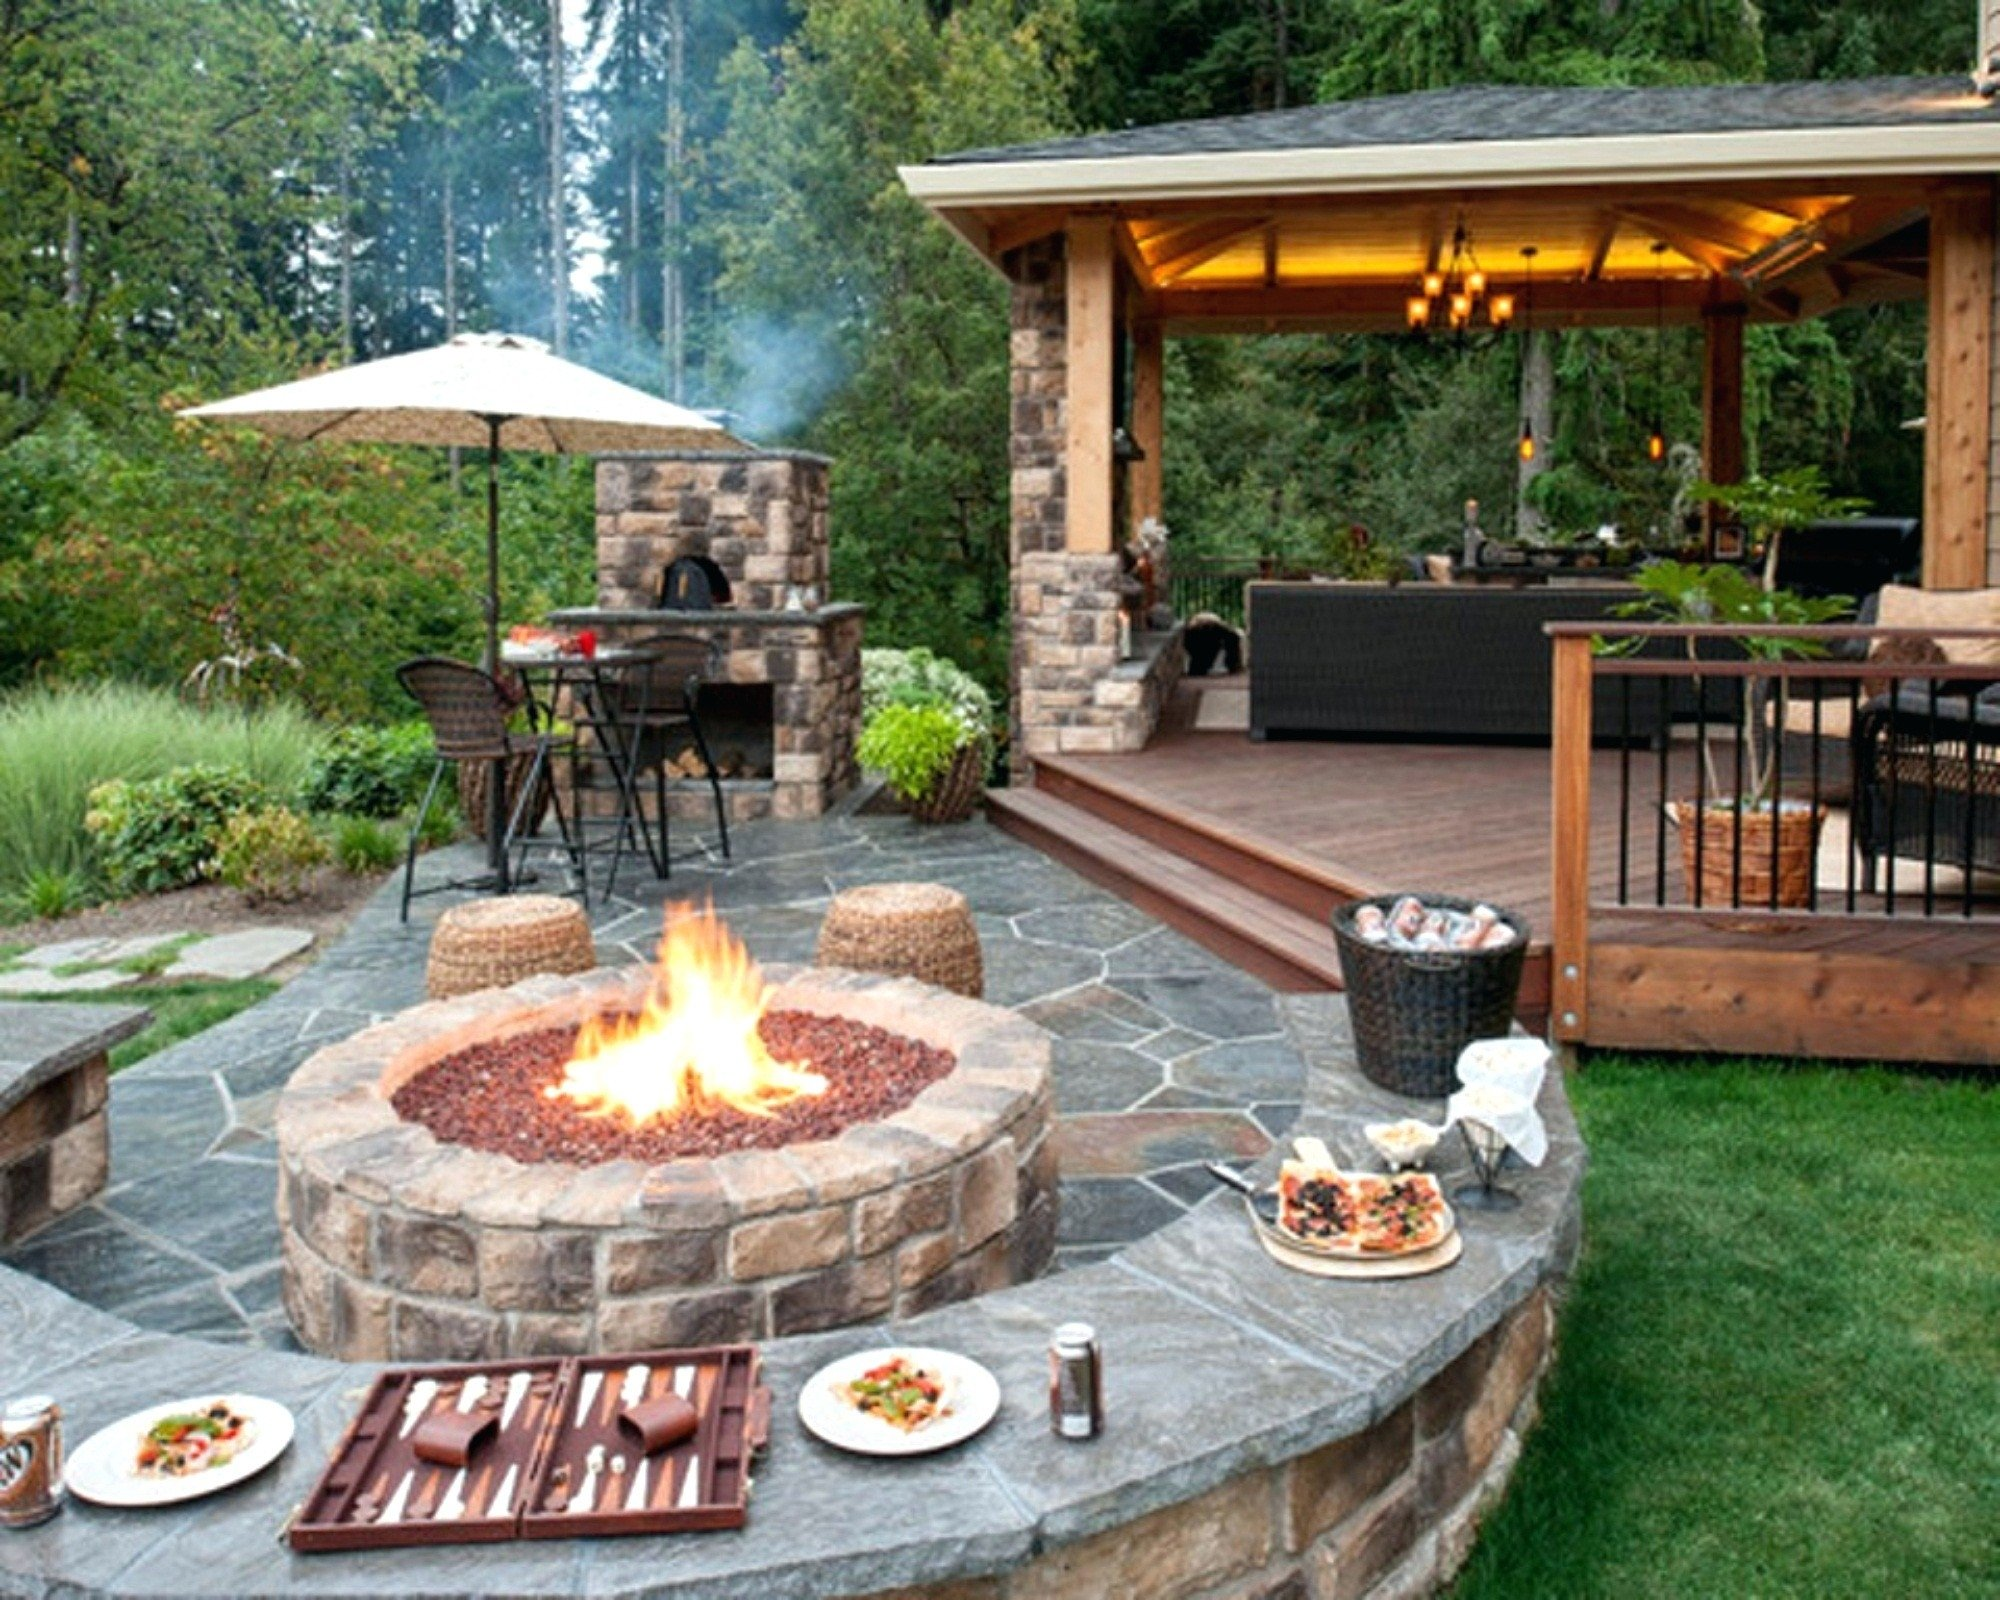 10 Lovely Small Patio Ideas On A Budget best of small patio ideas on a budget patio design ideas 2020